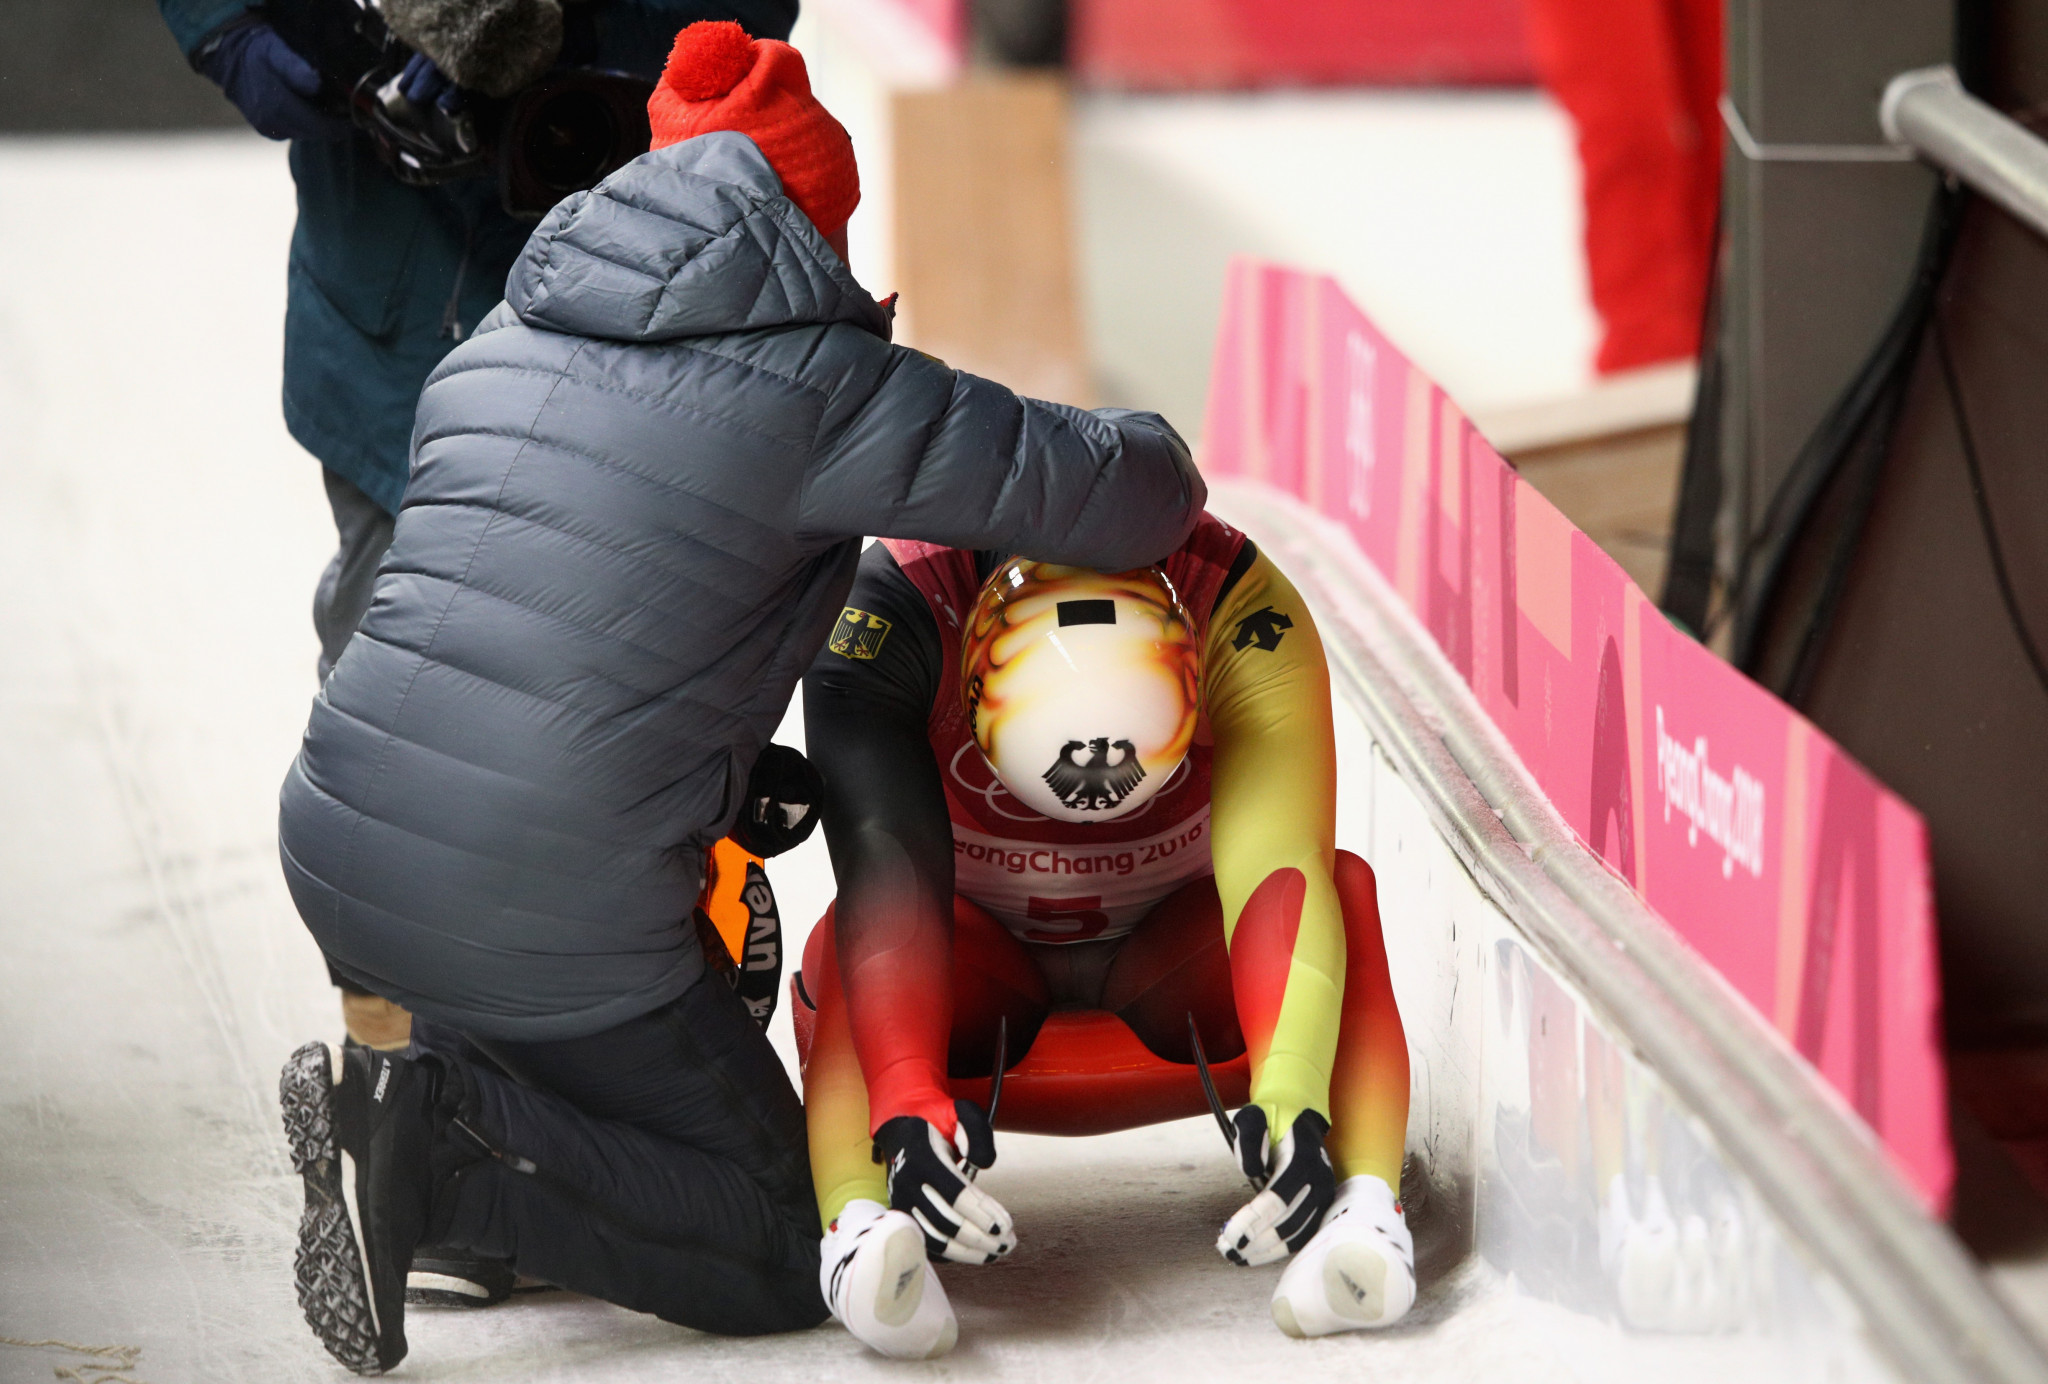 Television cameras picked up the instant emotions of the athletes involved in the dramatic men's luge finale ©Getty Images